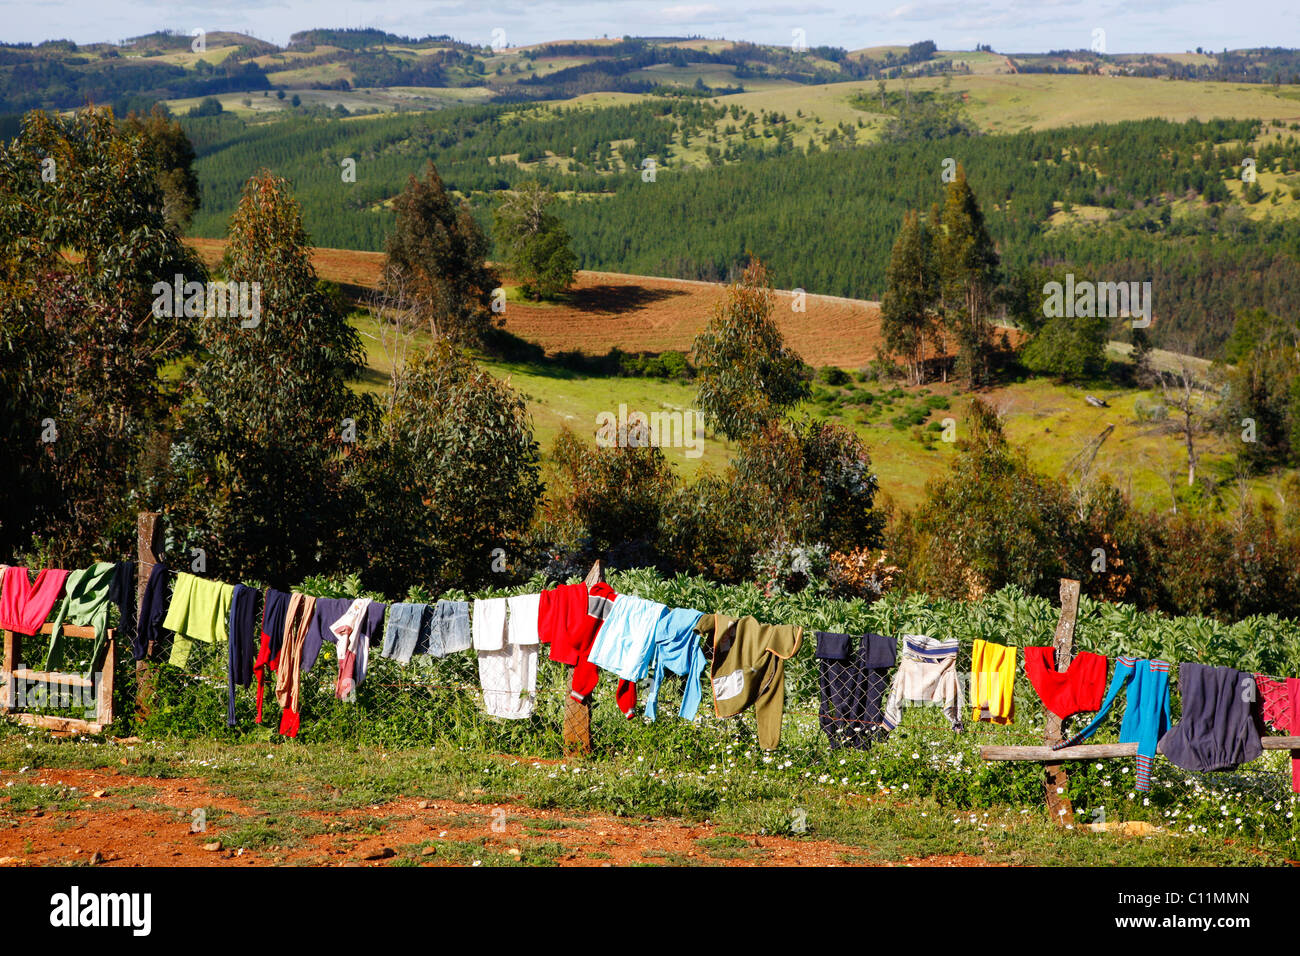 Laundry drying, Mapuche land, agricultural landscape, Bio-Bio region, Chile, South America Stock Photo